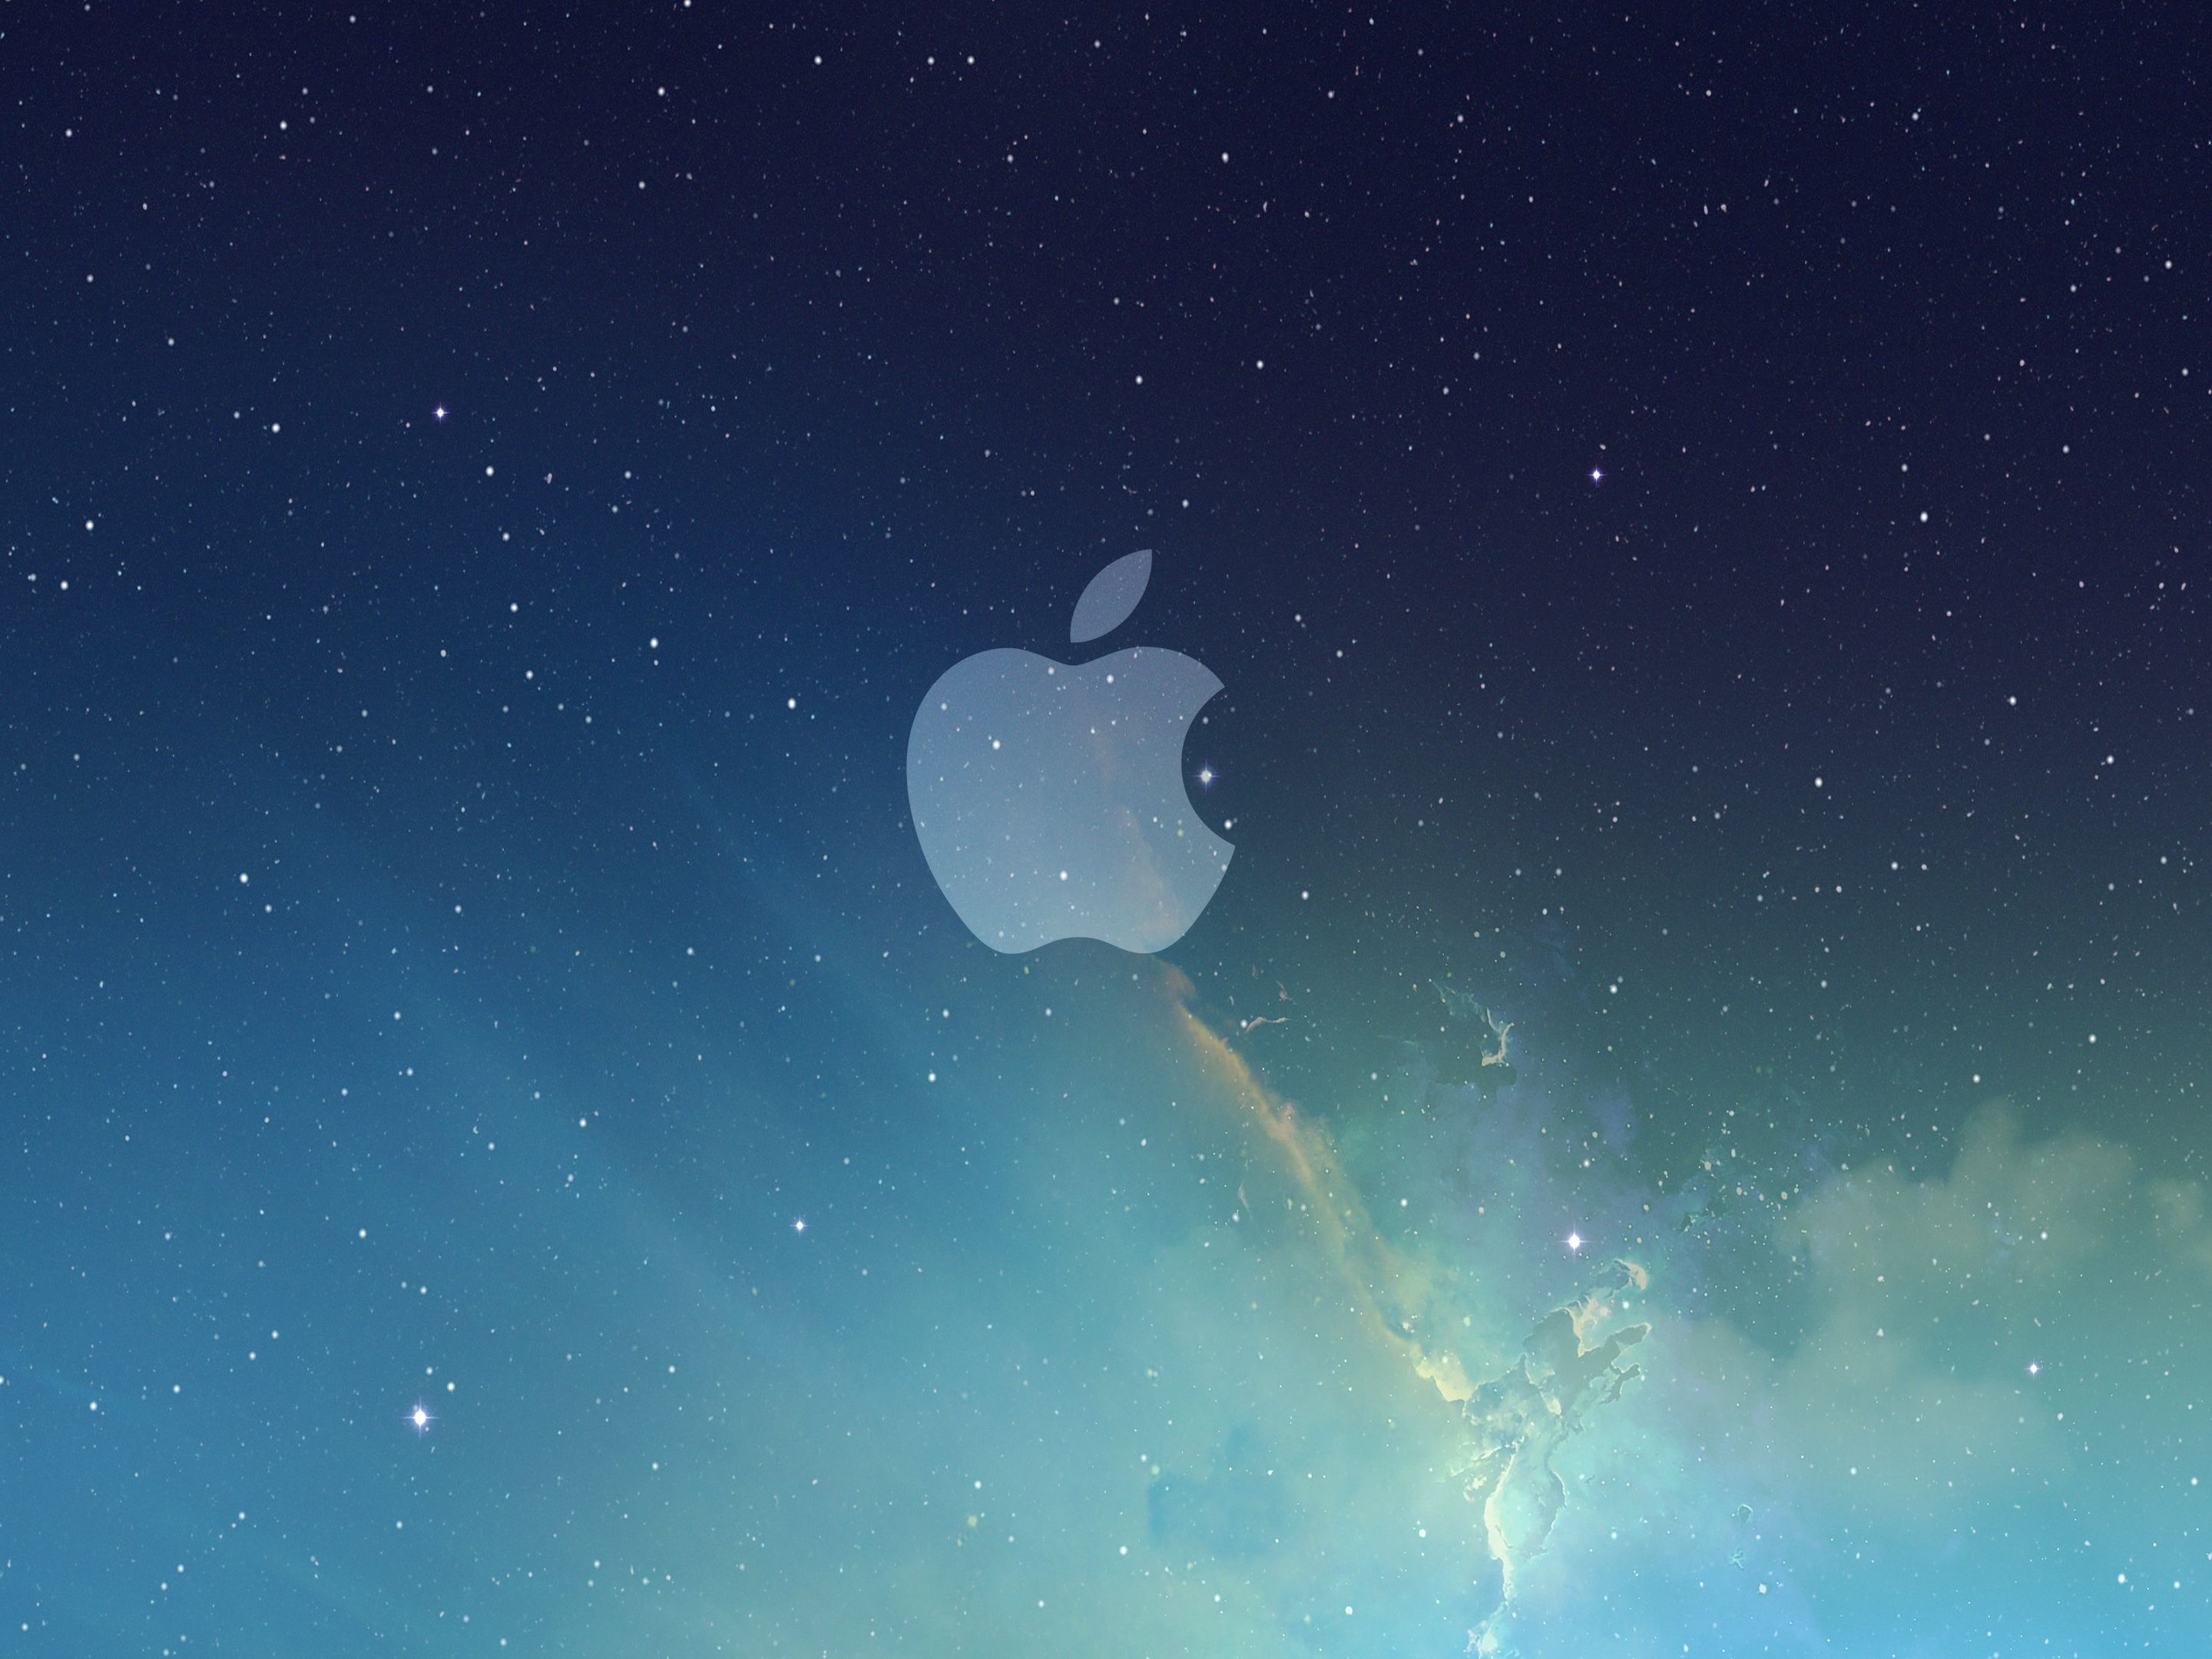 8k Apple Wallpapers Top Free 8k Apple Backgrounds Wallpaperaccess Images, Photos, Reviews